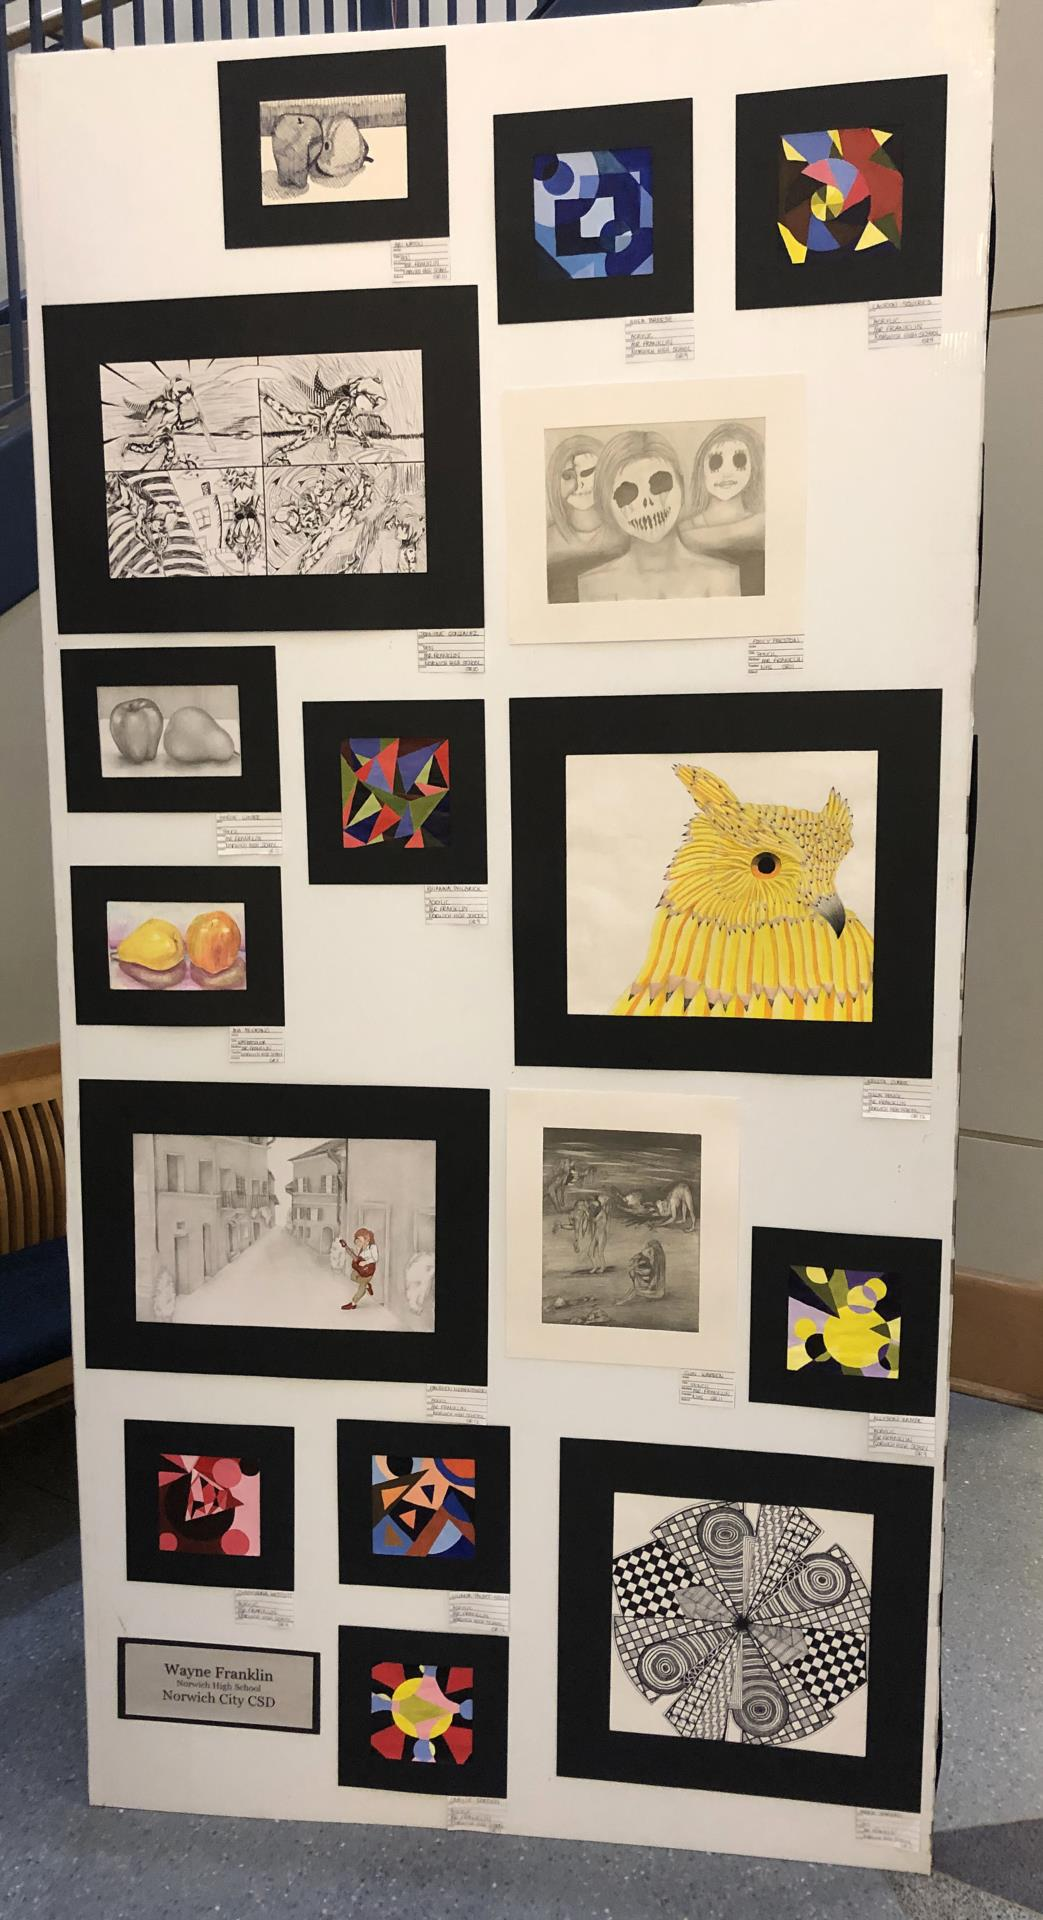 student artwork on display 1 of 3